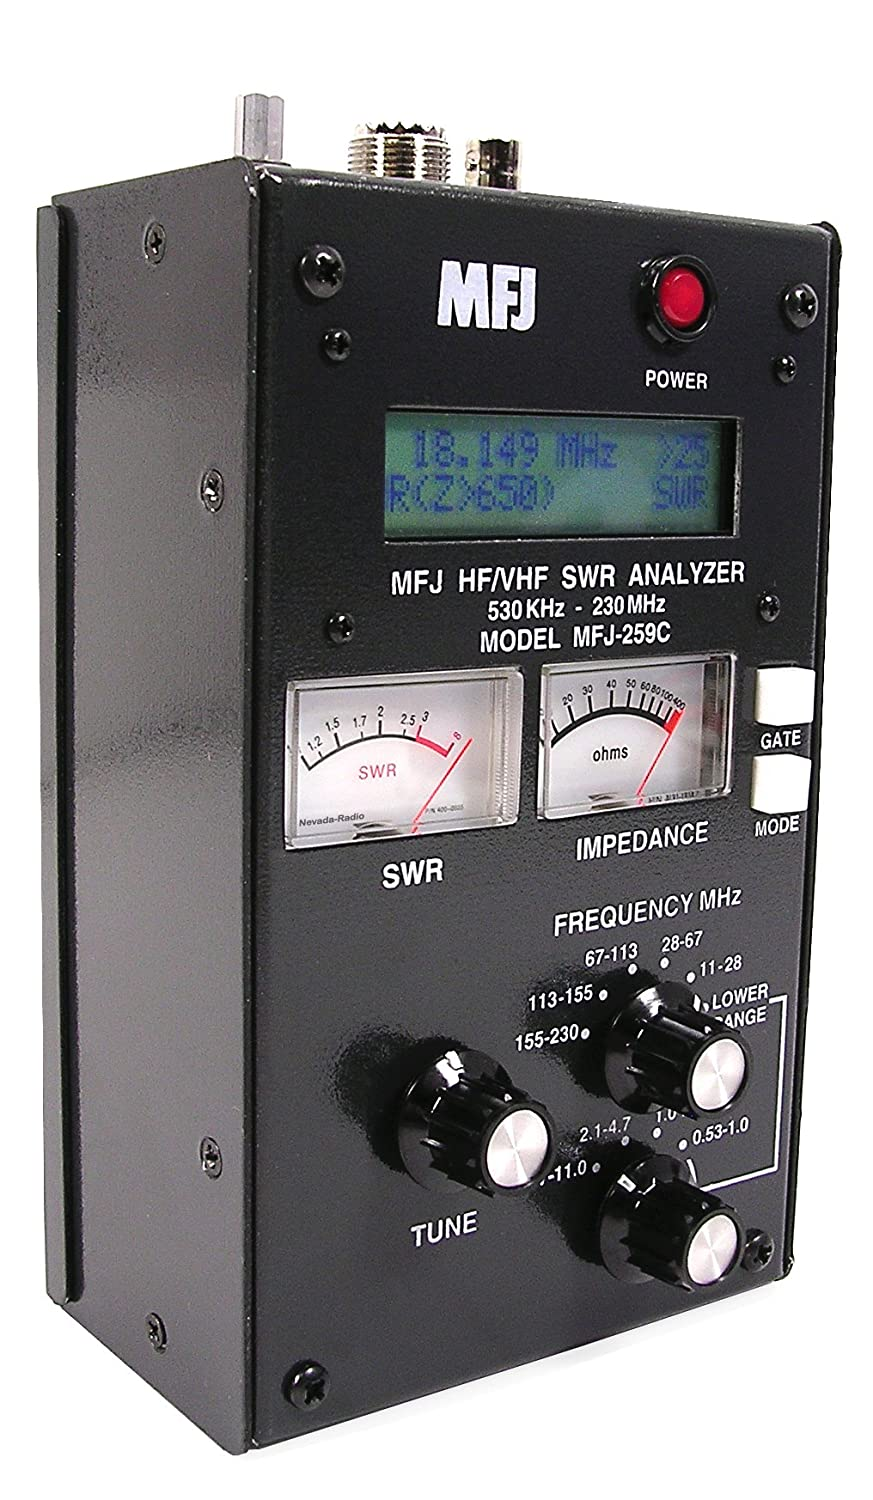 MFJ 259C Portable HF/VHF 530KHz to 230MHz continuous coverage SWR Analyzer